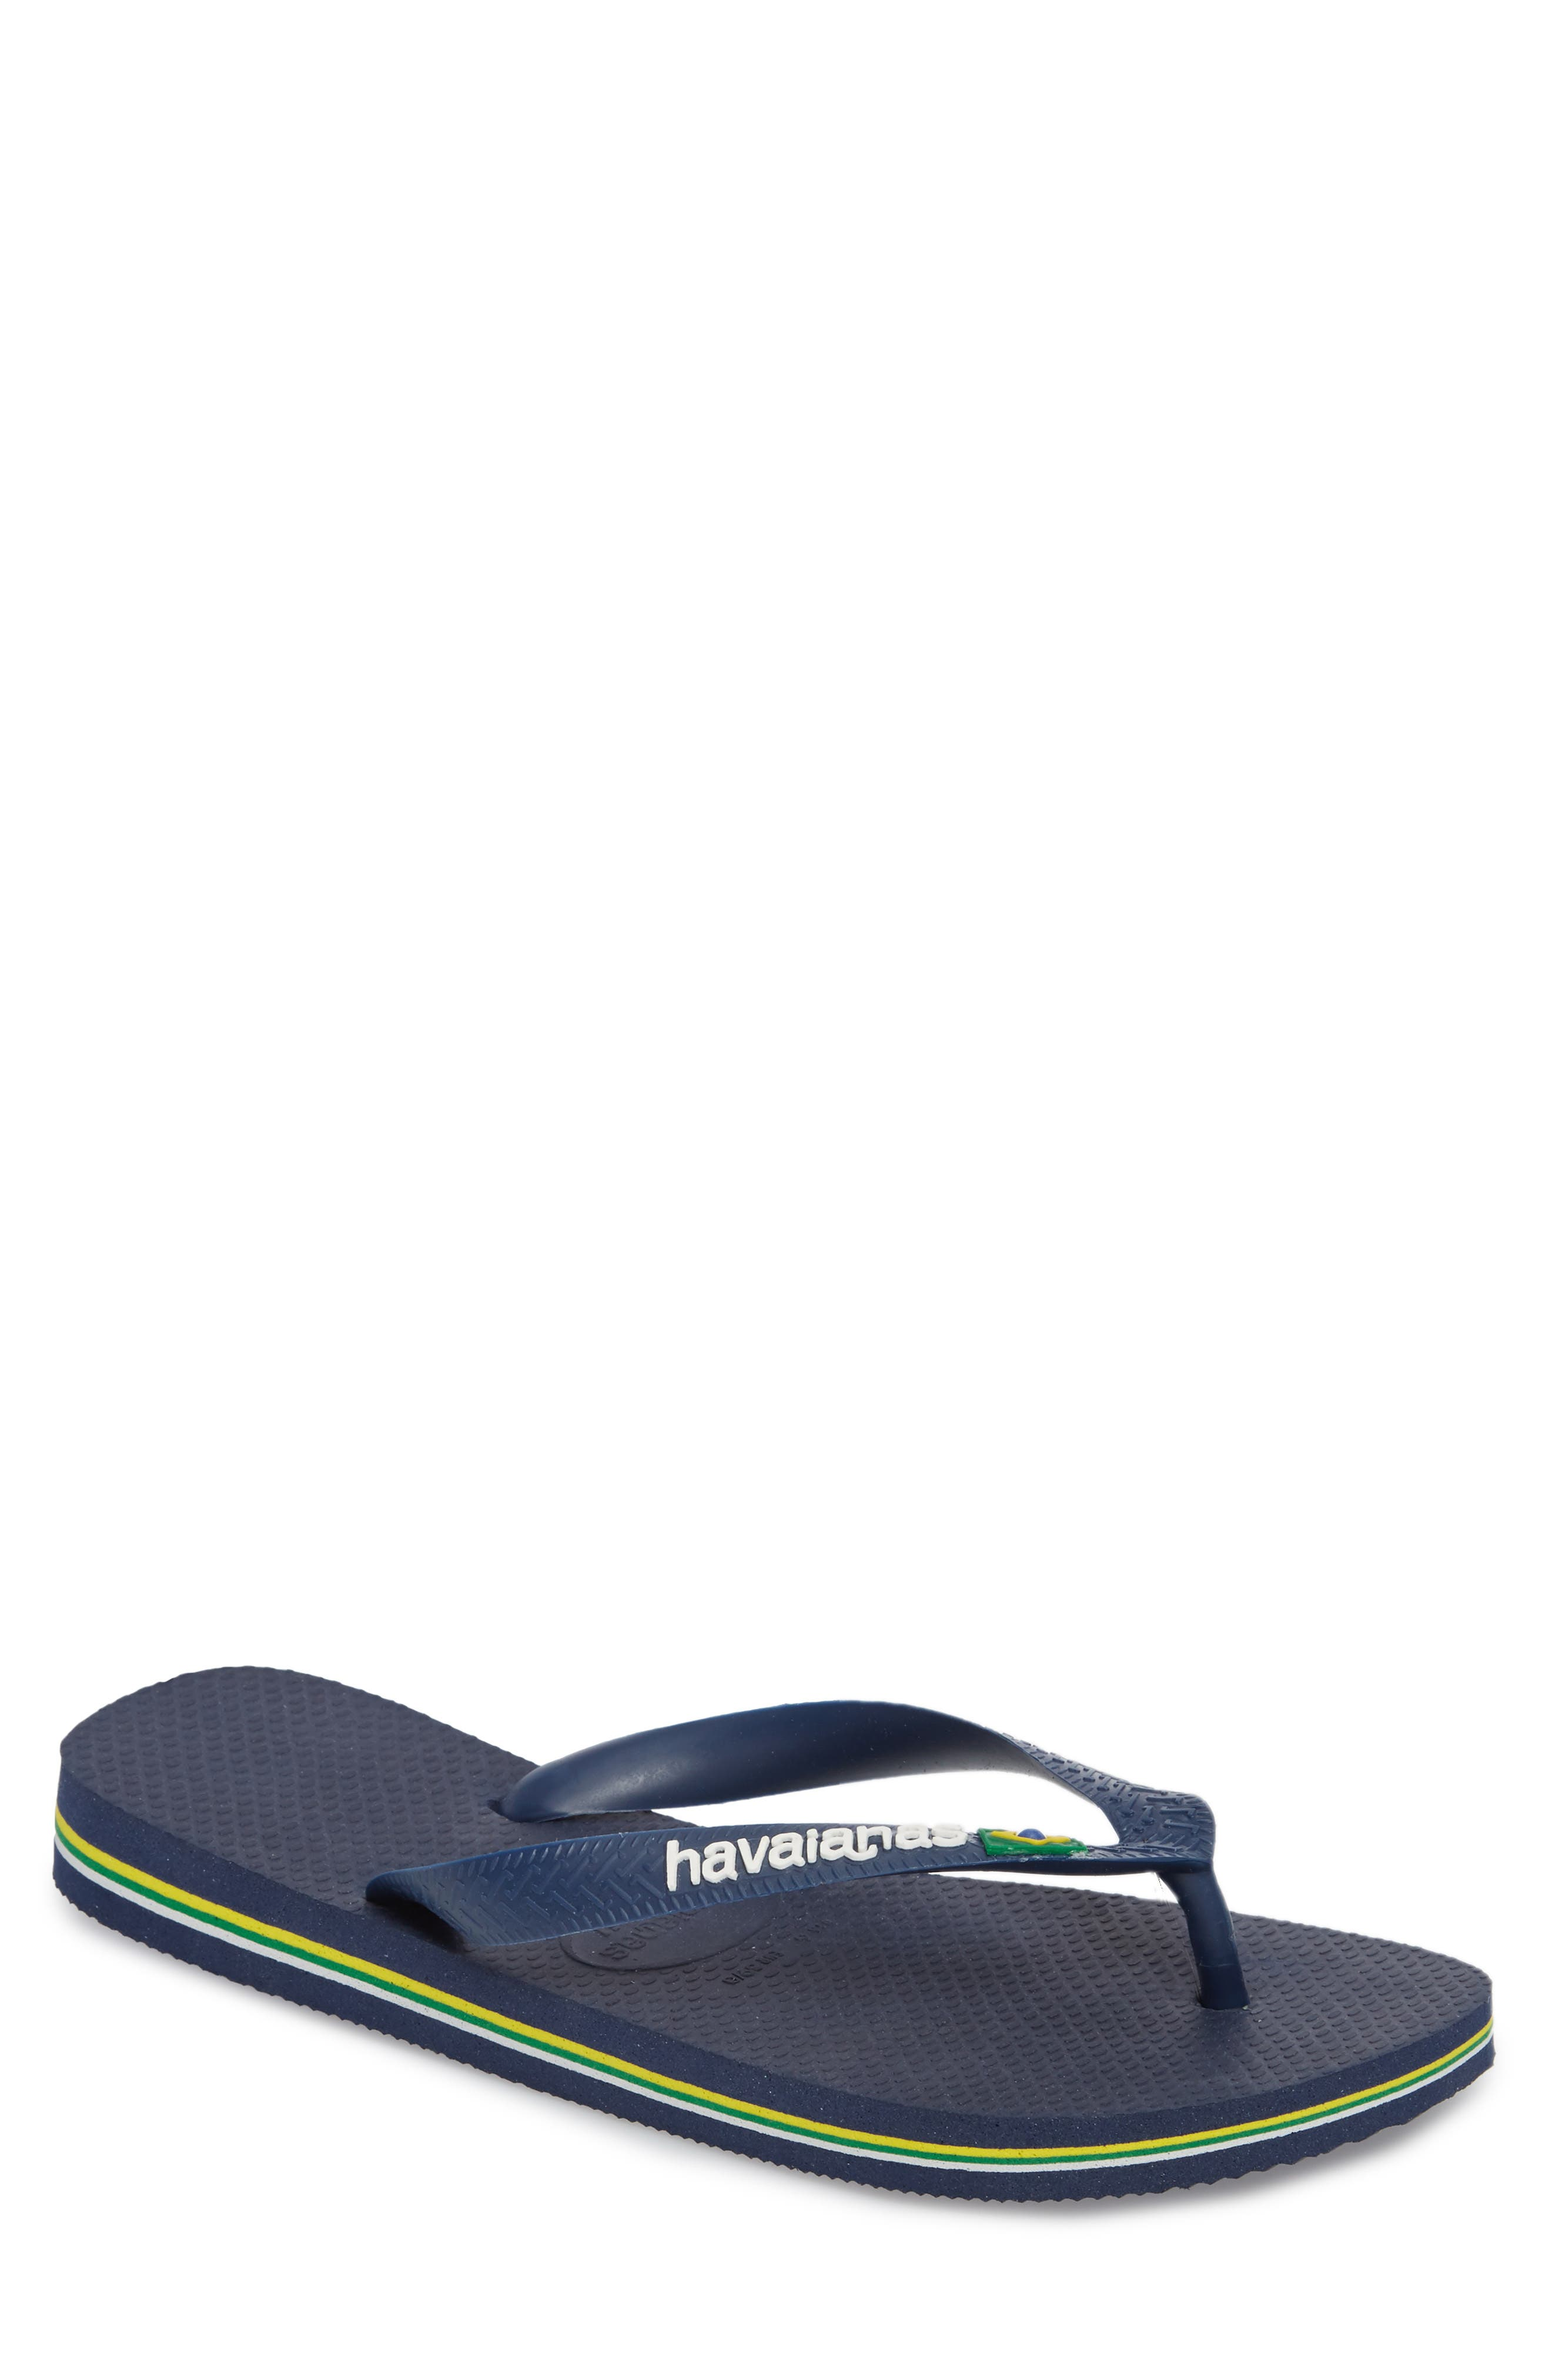 Alternate Image 1 Selected - Havaianas Brazil Flip Flop (Men)